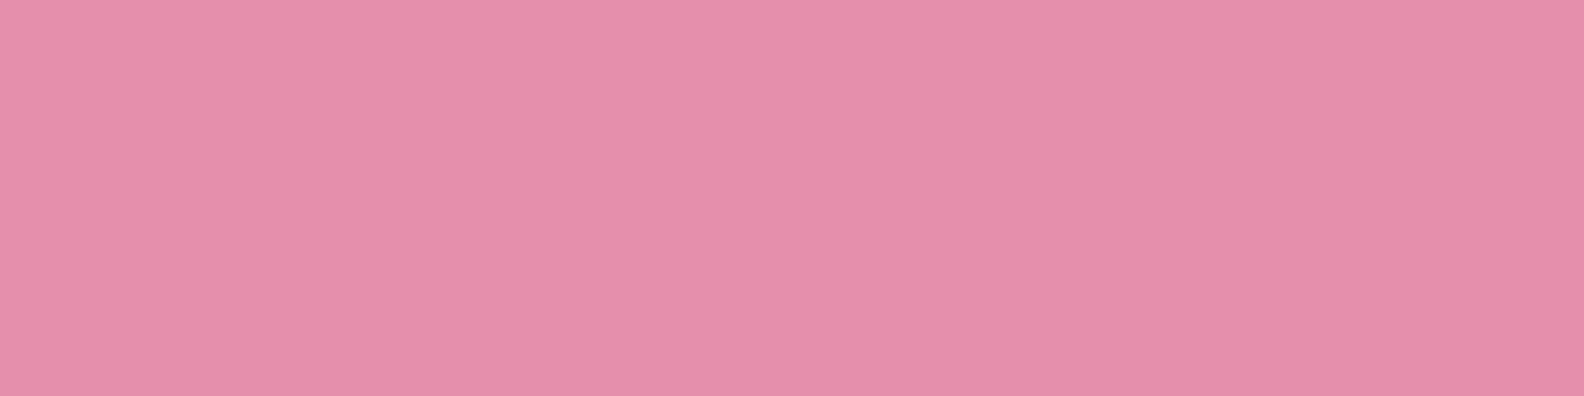 1584x396 Light Thulian Pink Solid Color Background